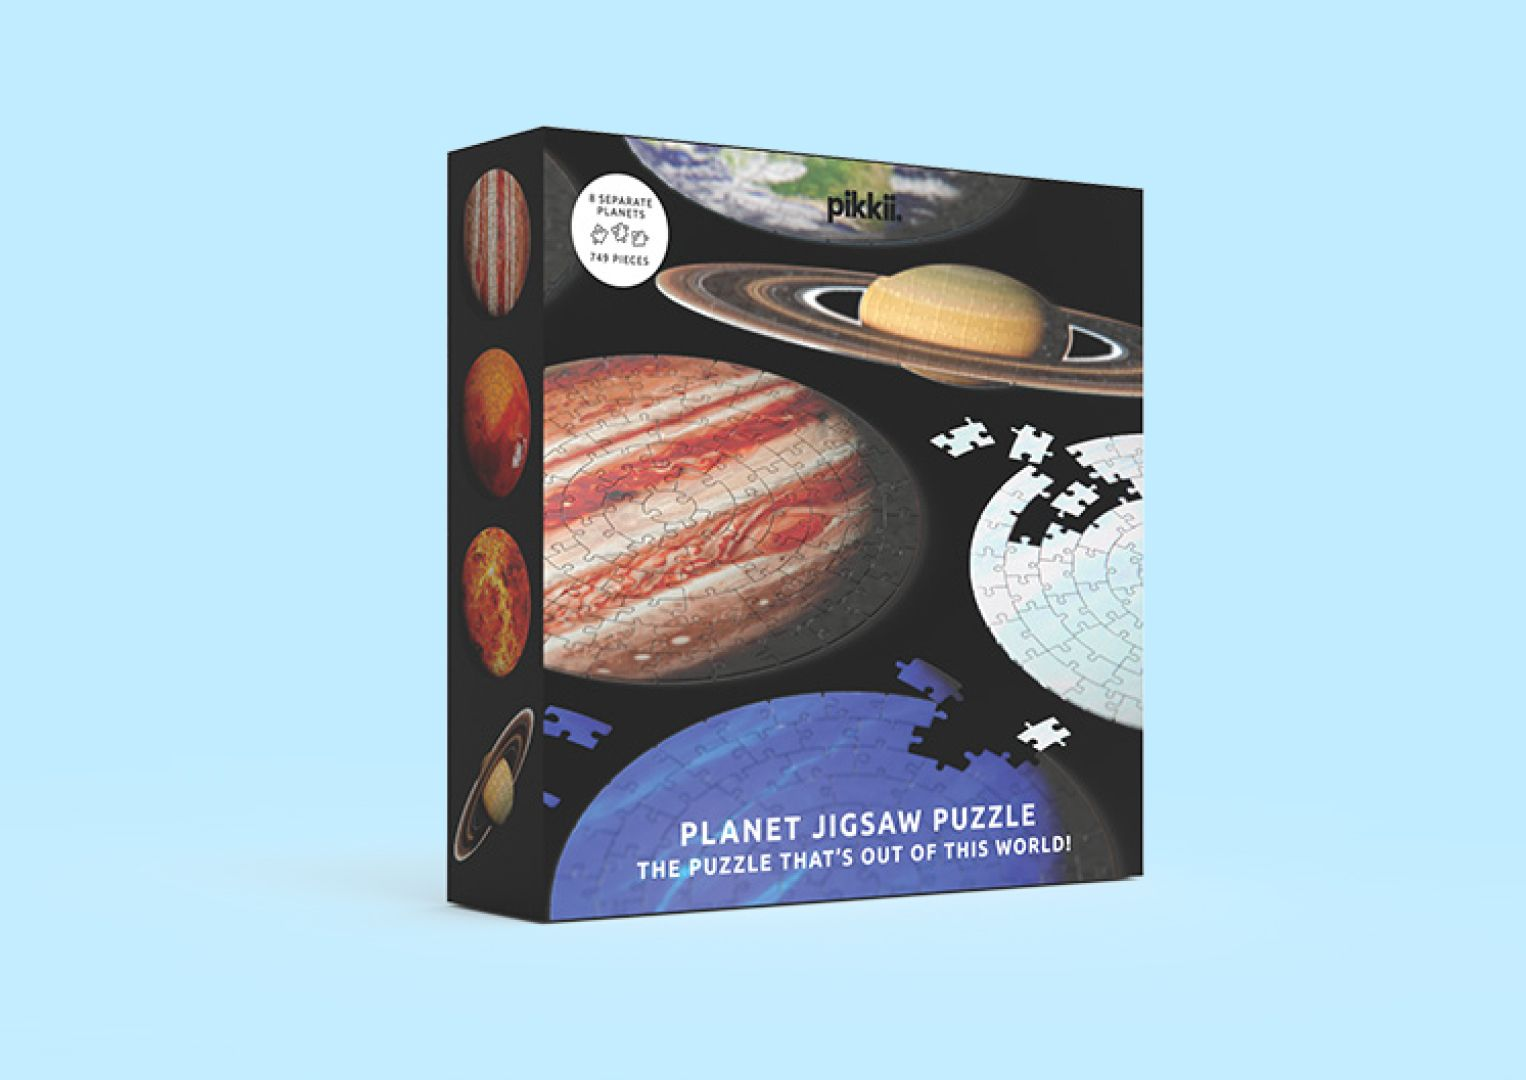 Planet Jigsaw Puzzle Packaging